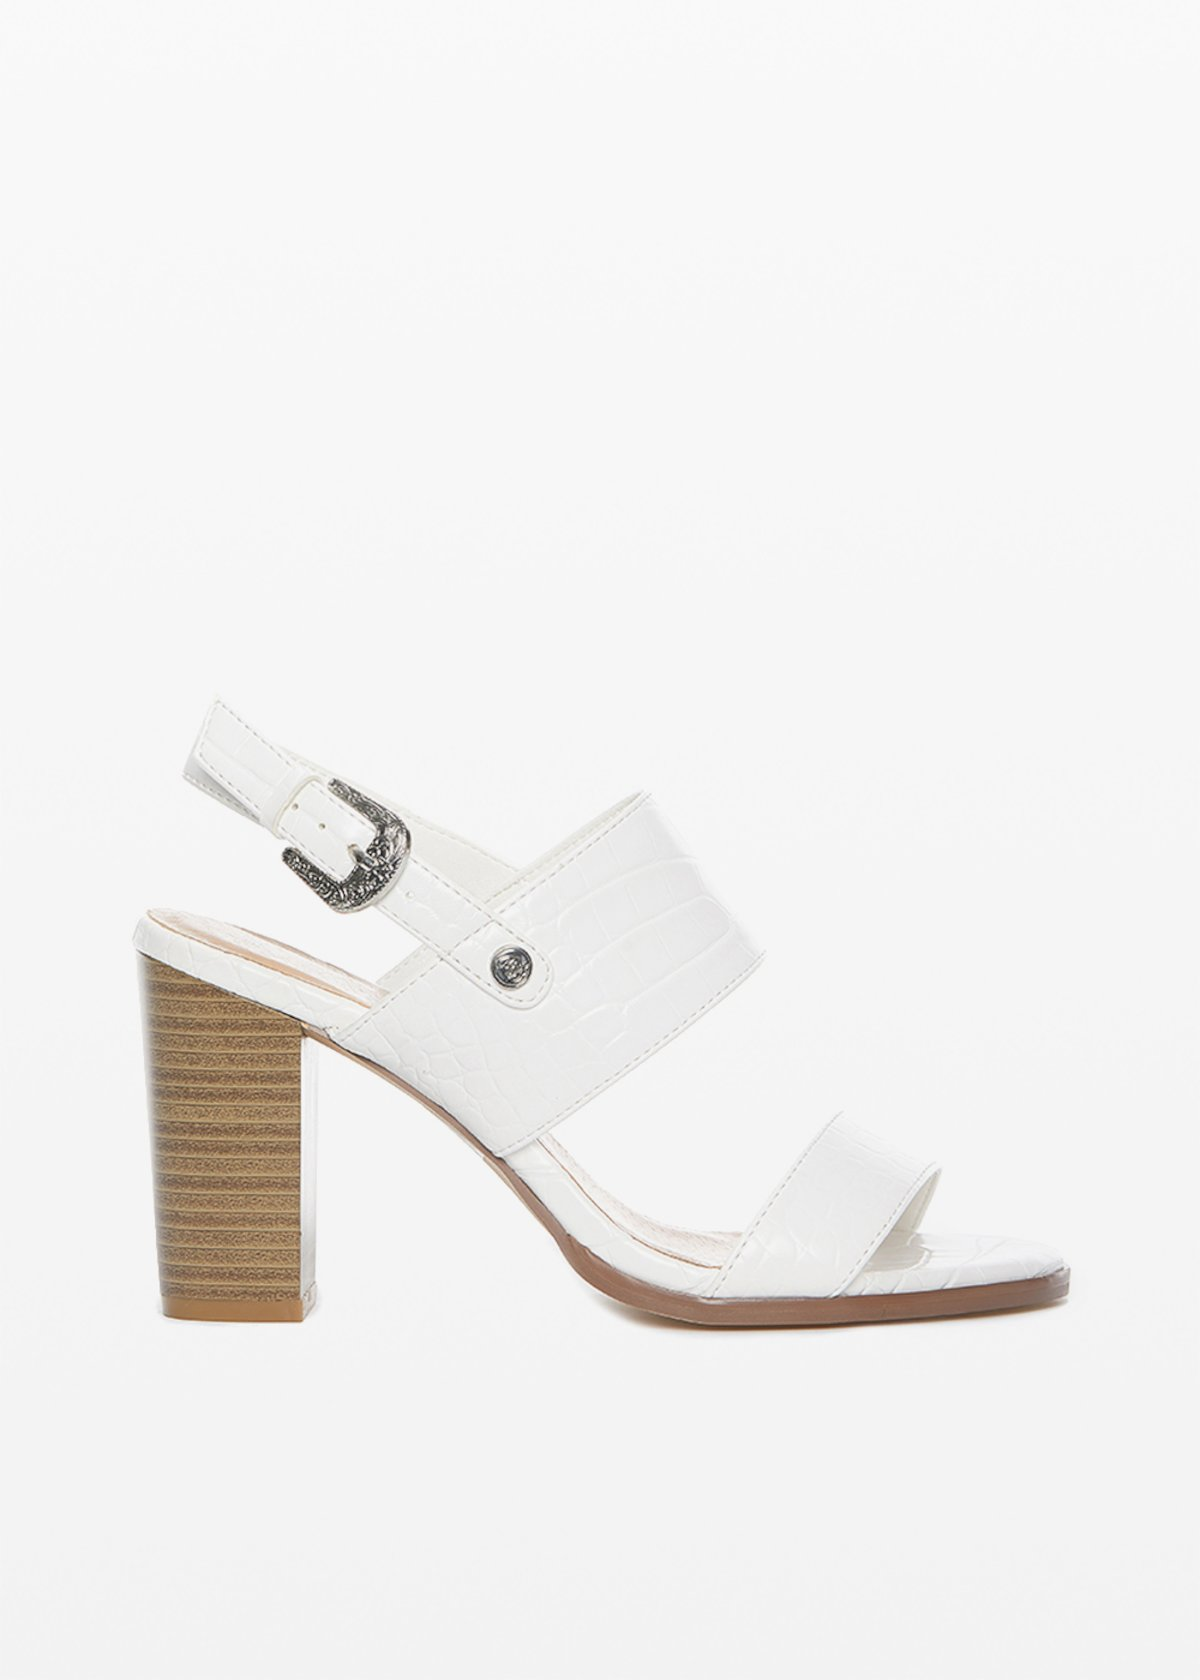 Shayla faux leather sandal crocodile effect - White - Woman - Category image